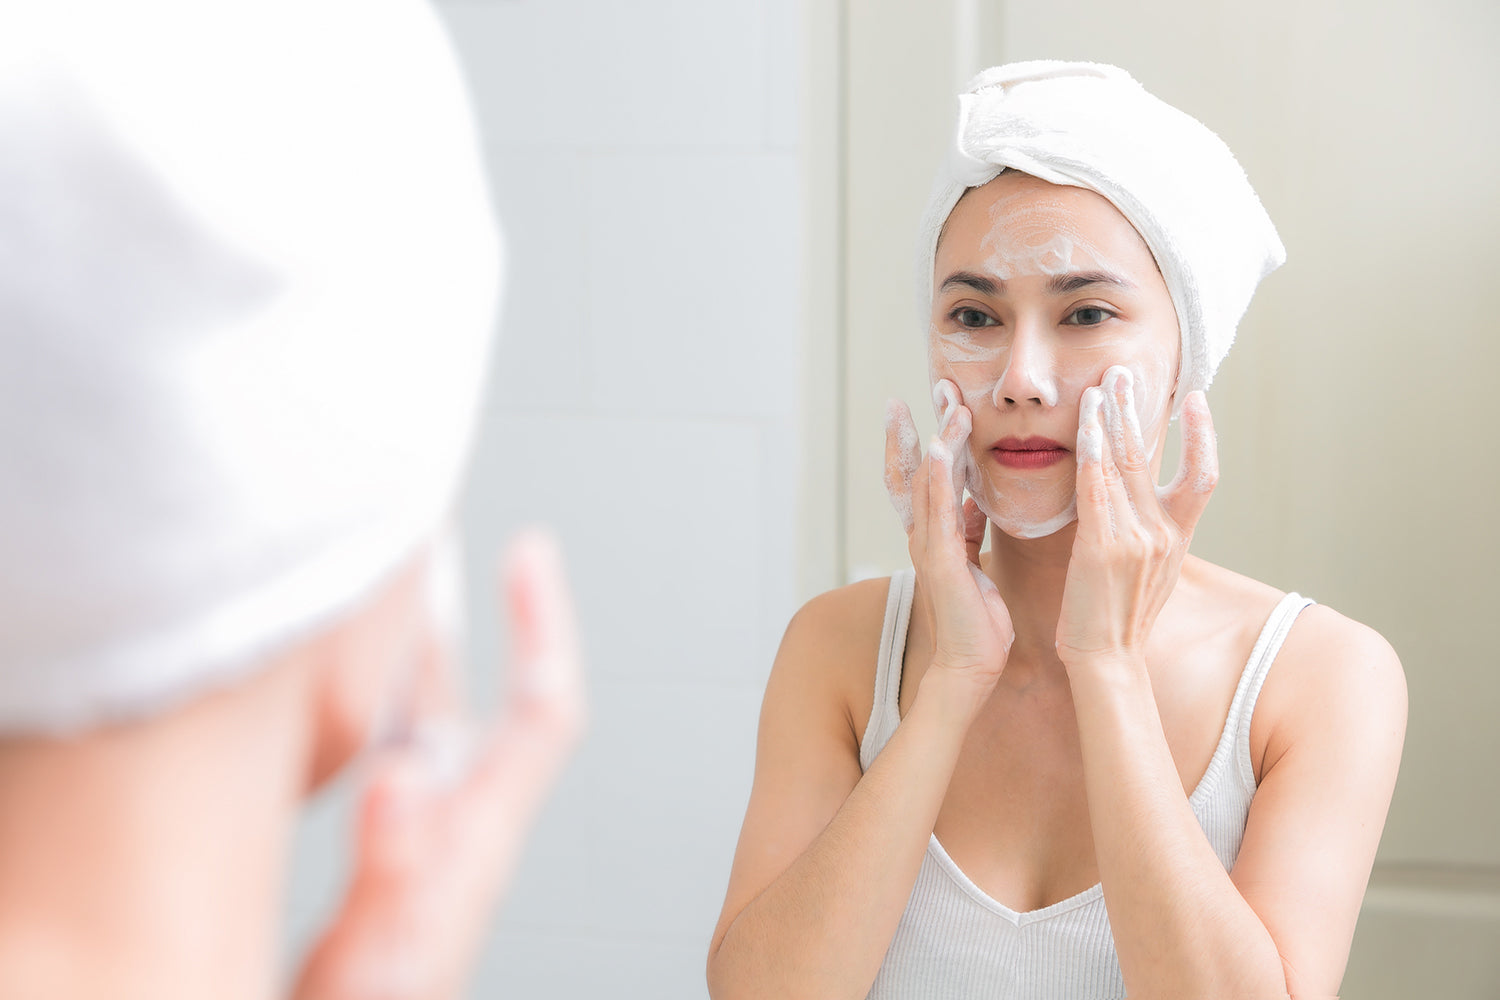 Skincare 101: Using A Natural Facial Cleanser